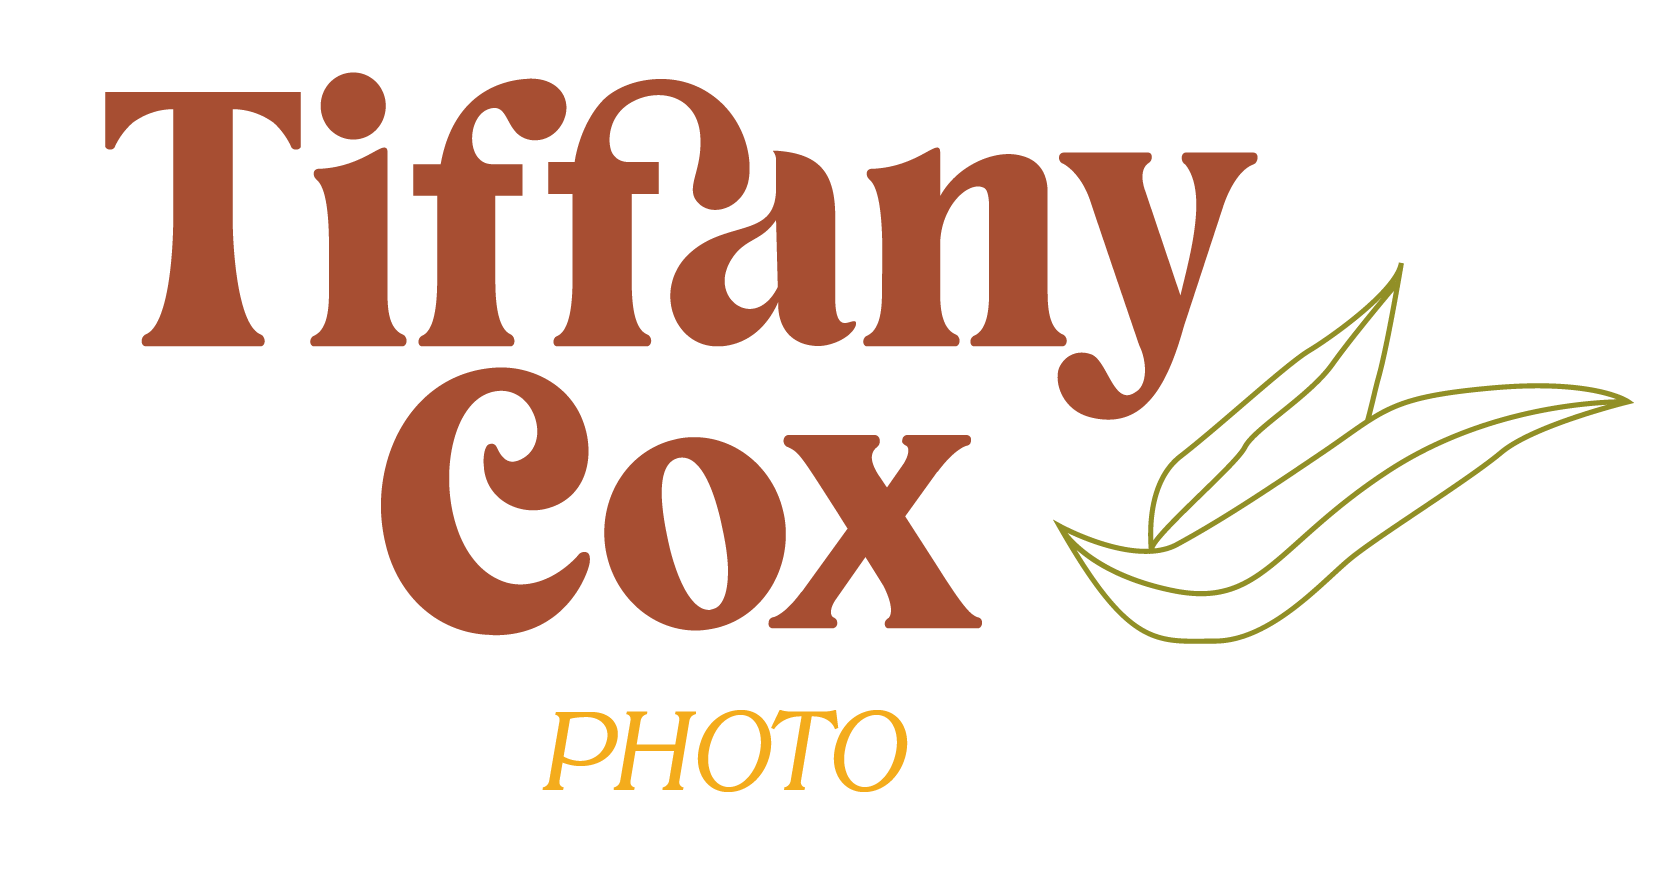 Tiffany Cox Photography